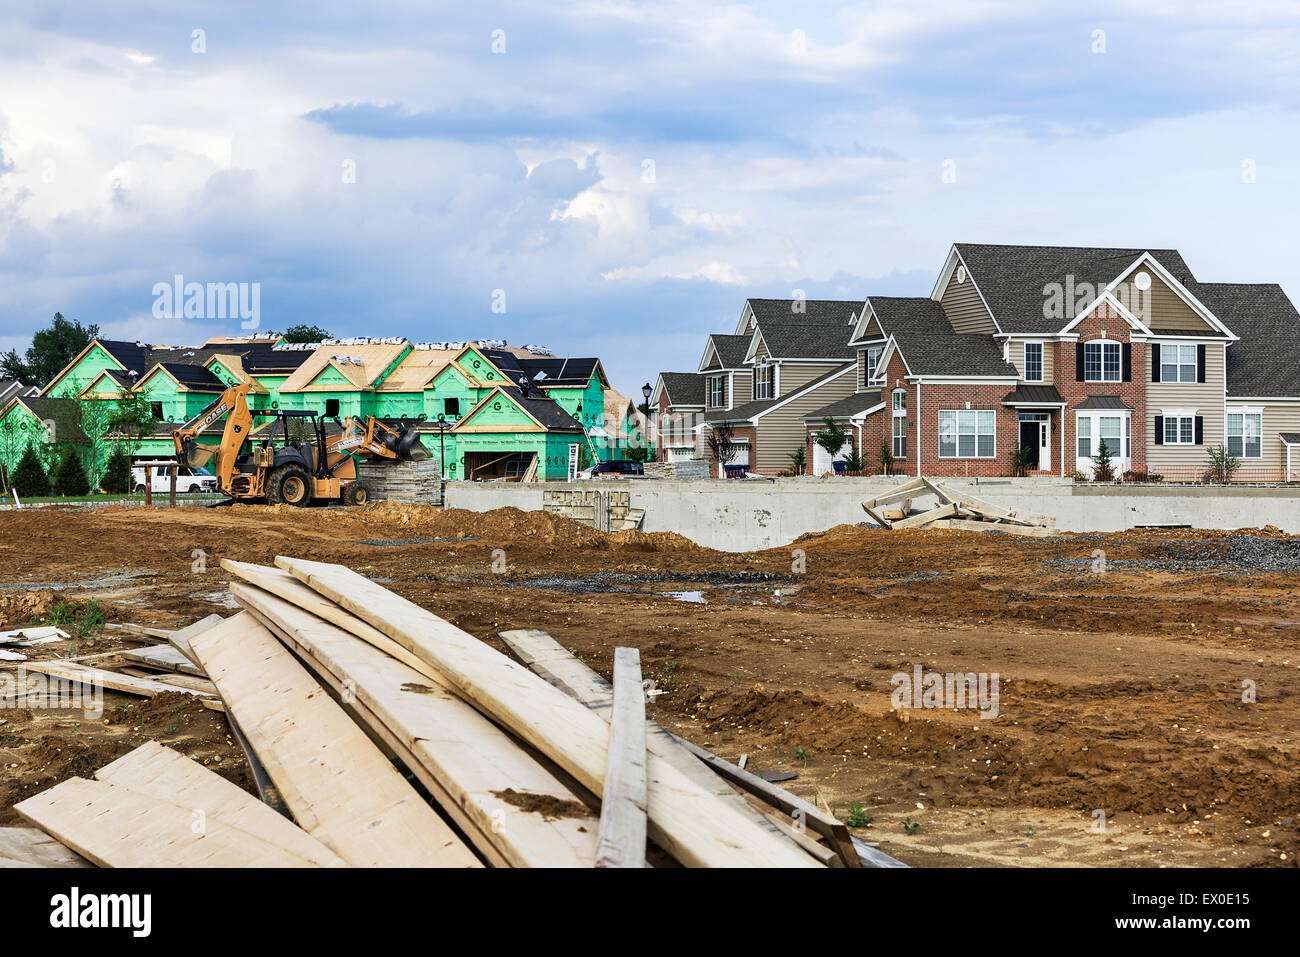 New home construction, New Jersey, USA. Stock Photo